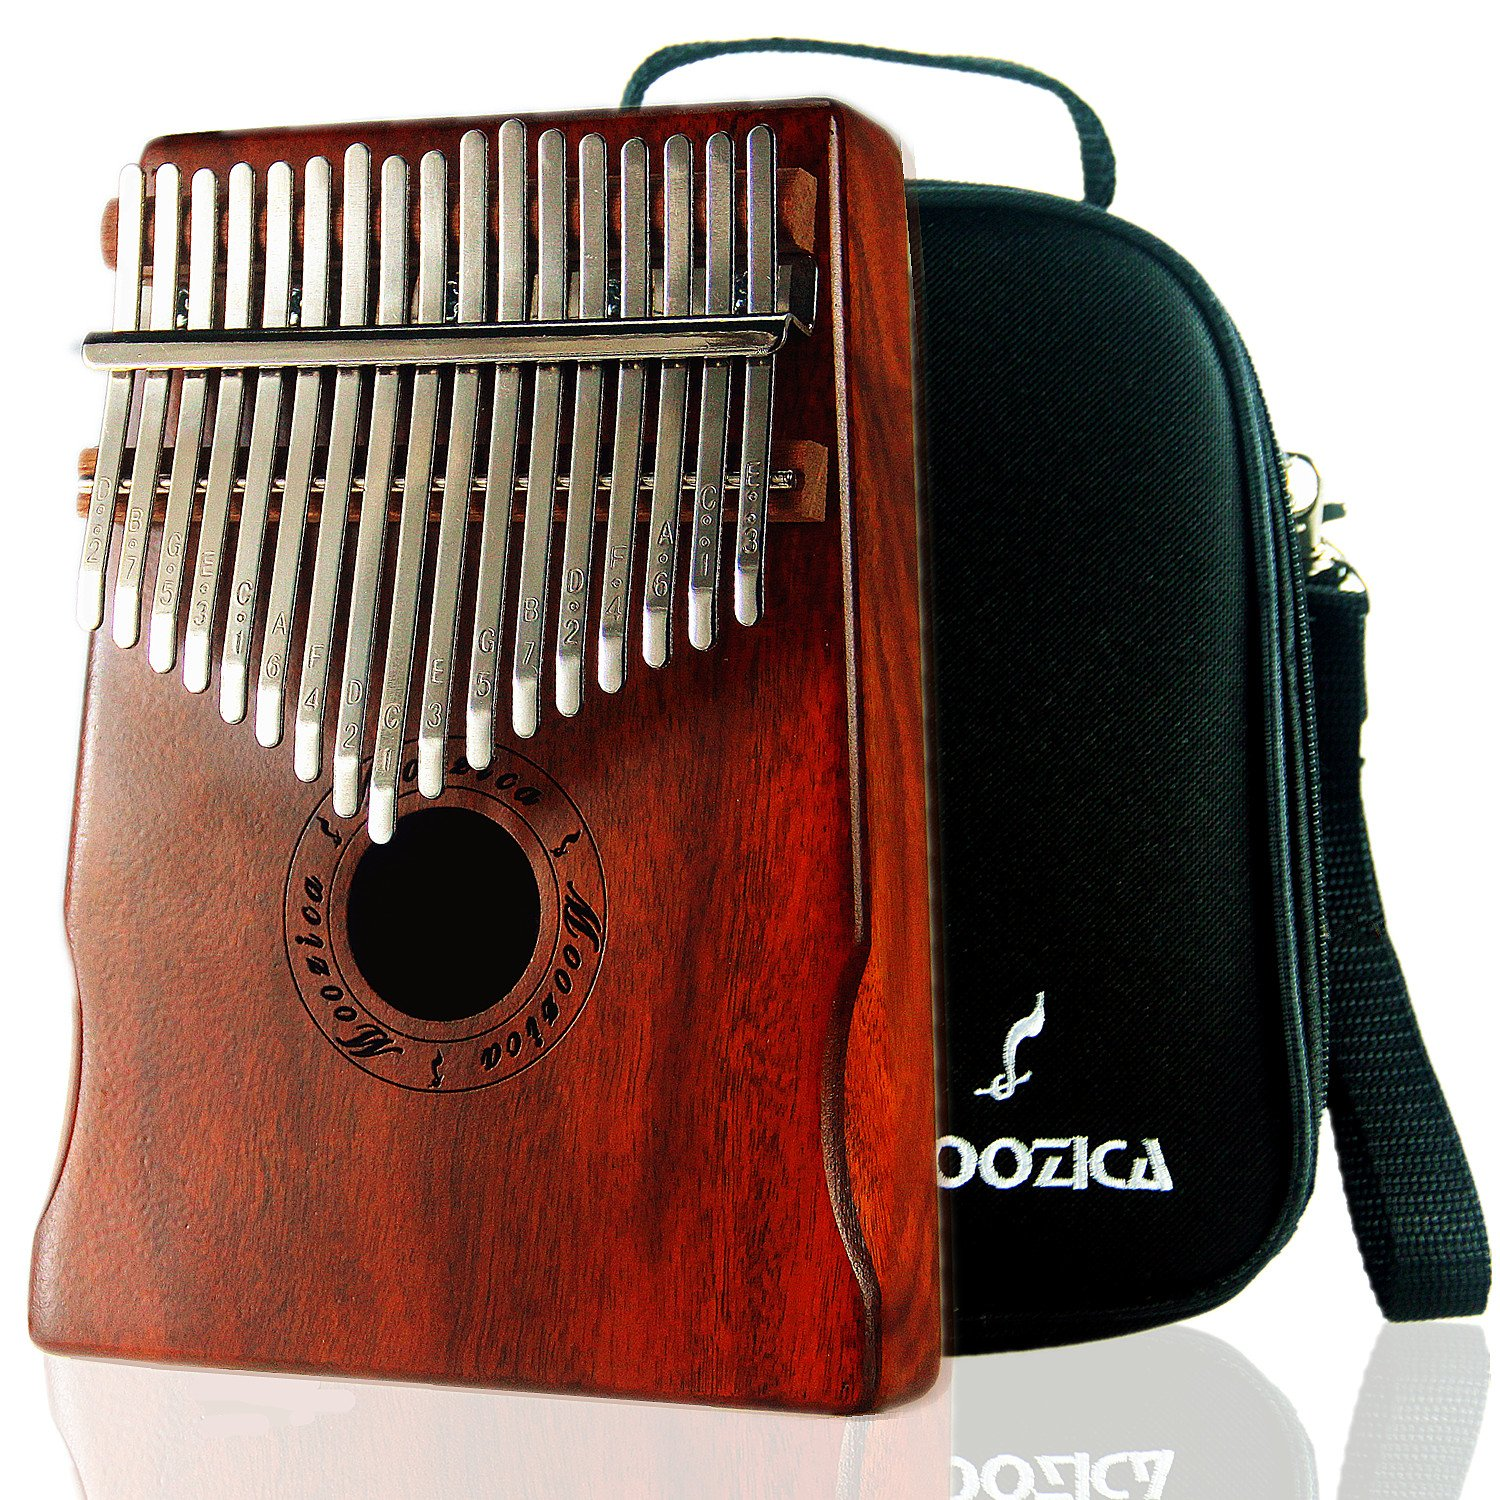 Moozica Mahogany Tone Wood 17 Keys Kalimba Marimba, High Quality Professional Finger Thumb Piano With Professional Kalimba Bag(Dark Green) K17MBL